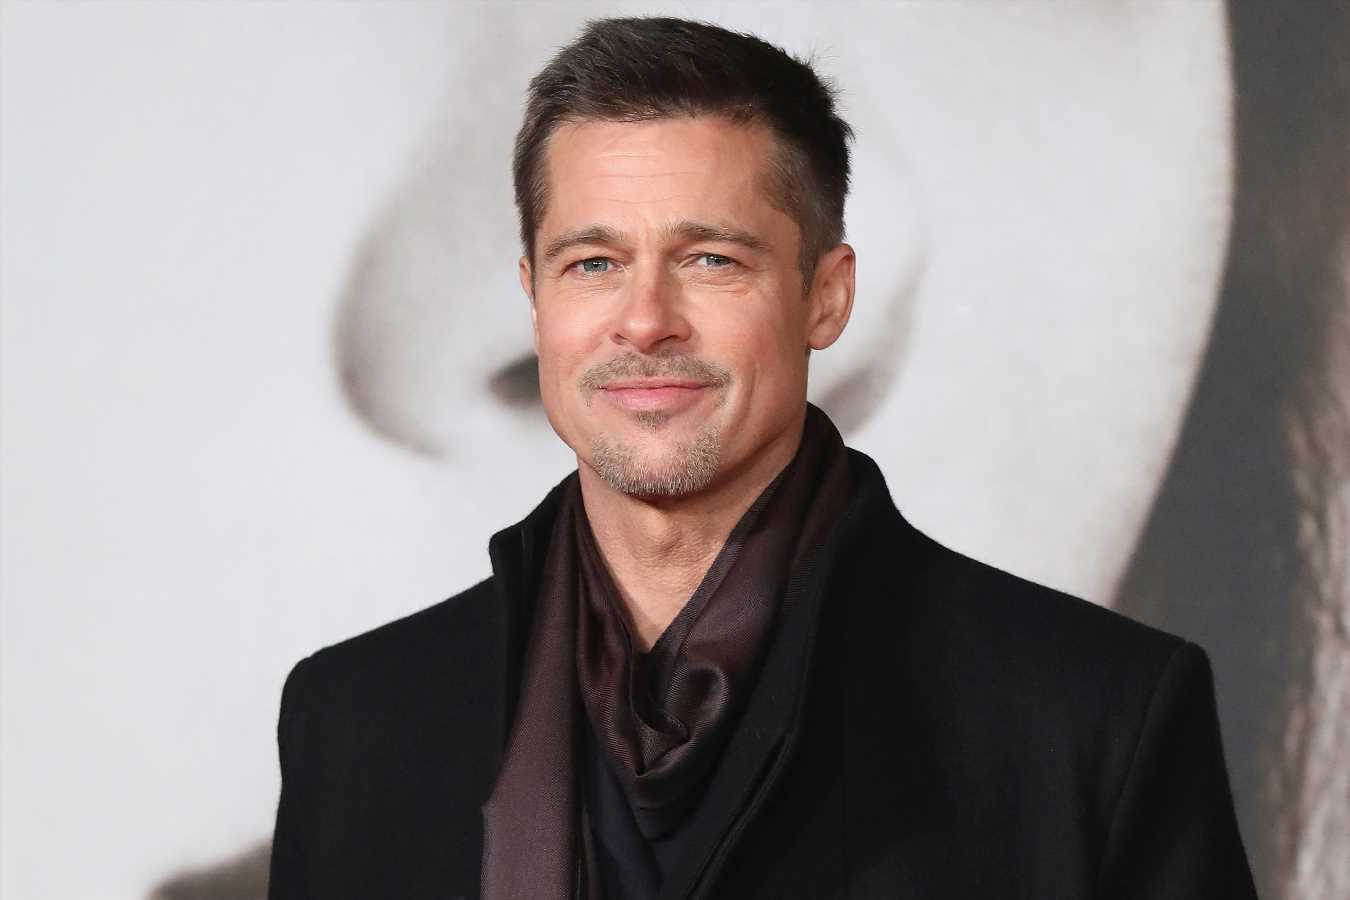 Brad Pitt Thinks He'll One Day 'Organically' Be Done with Acting: 'I Enjoy Doing Other Things'